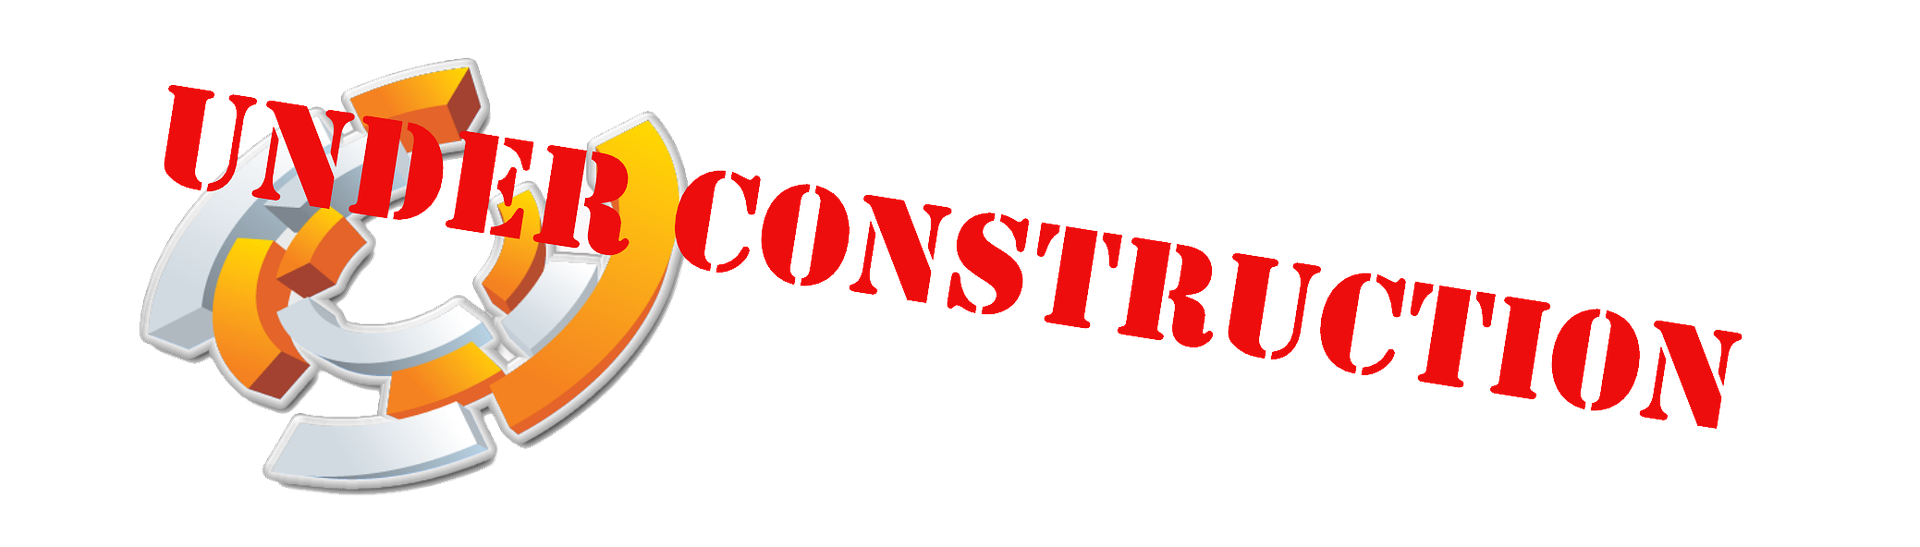 new under construction